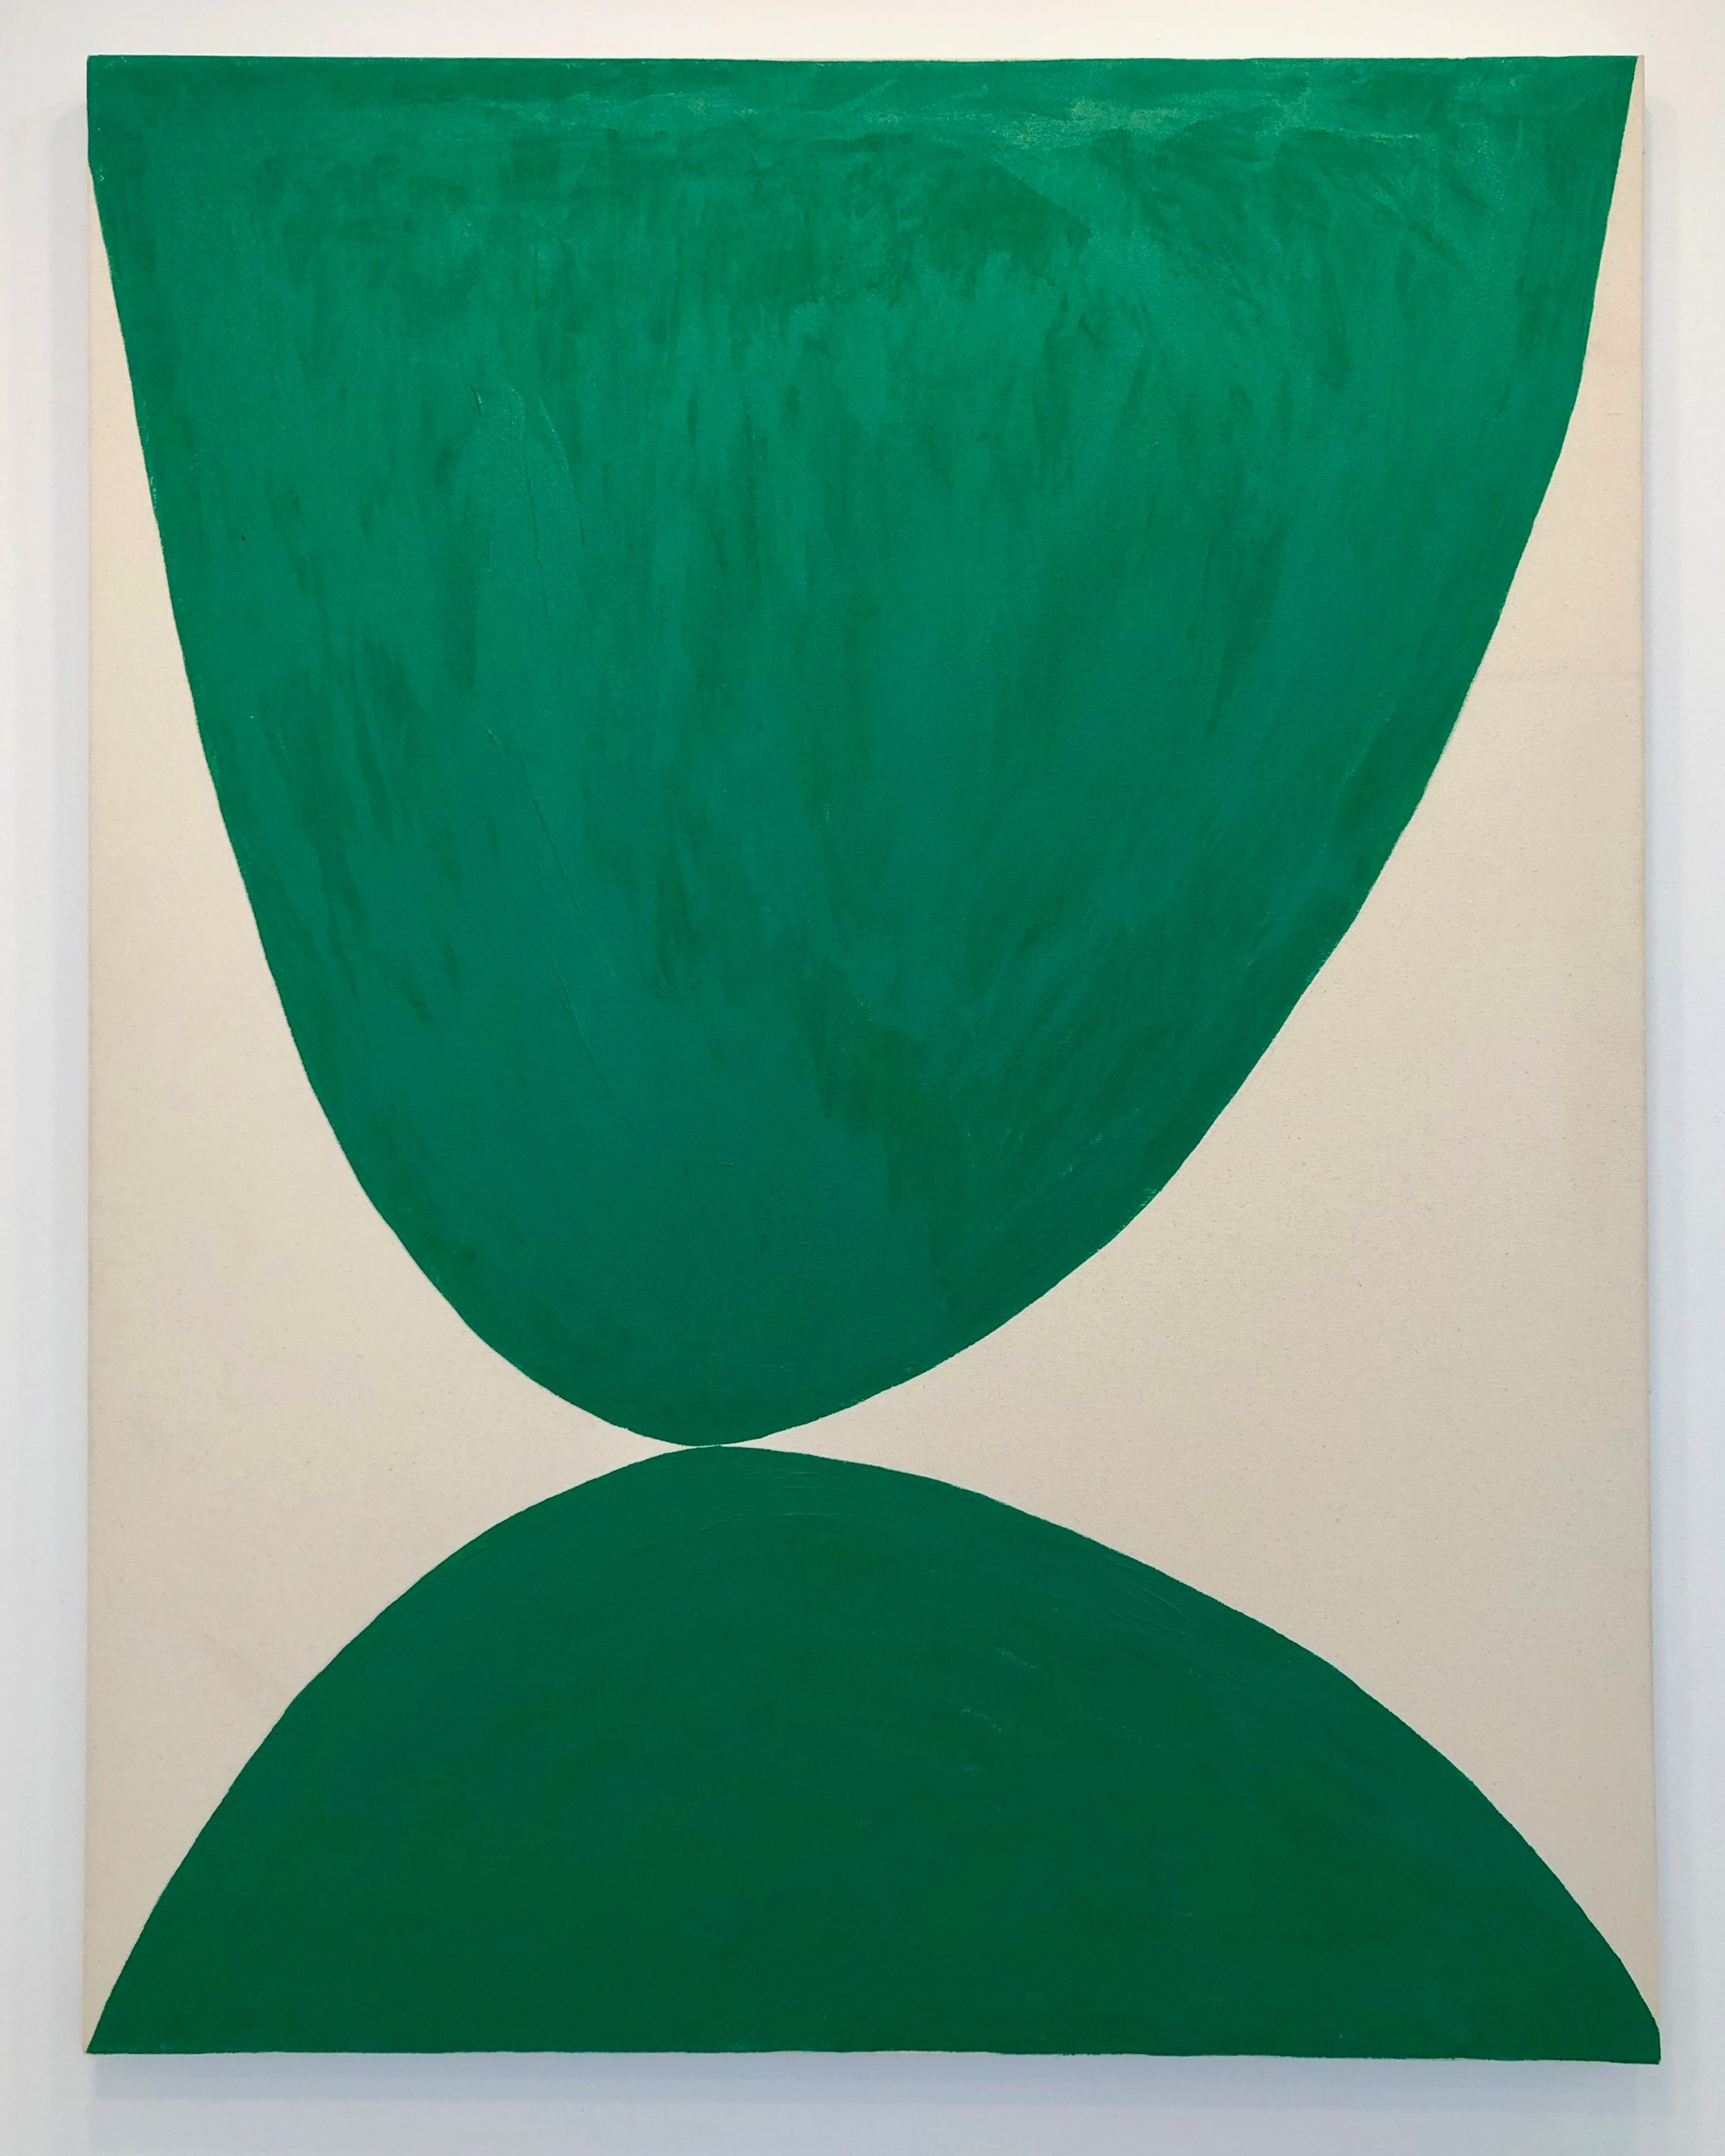 Fabian L Bernal, Untitled Green, 2016. Acrylic on untreated canvas, 50 x 39 inches.